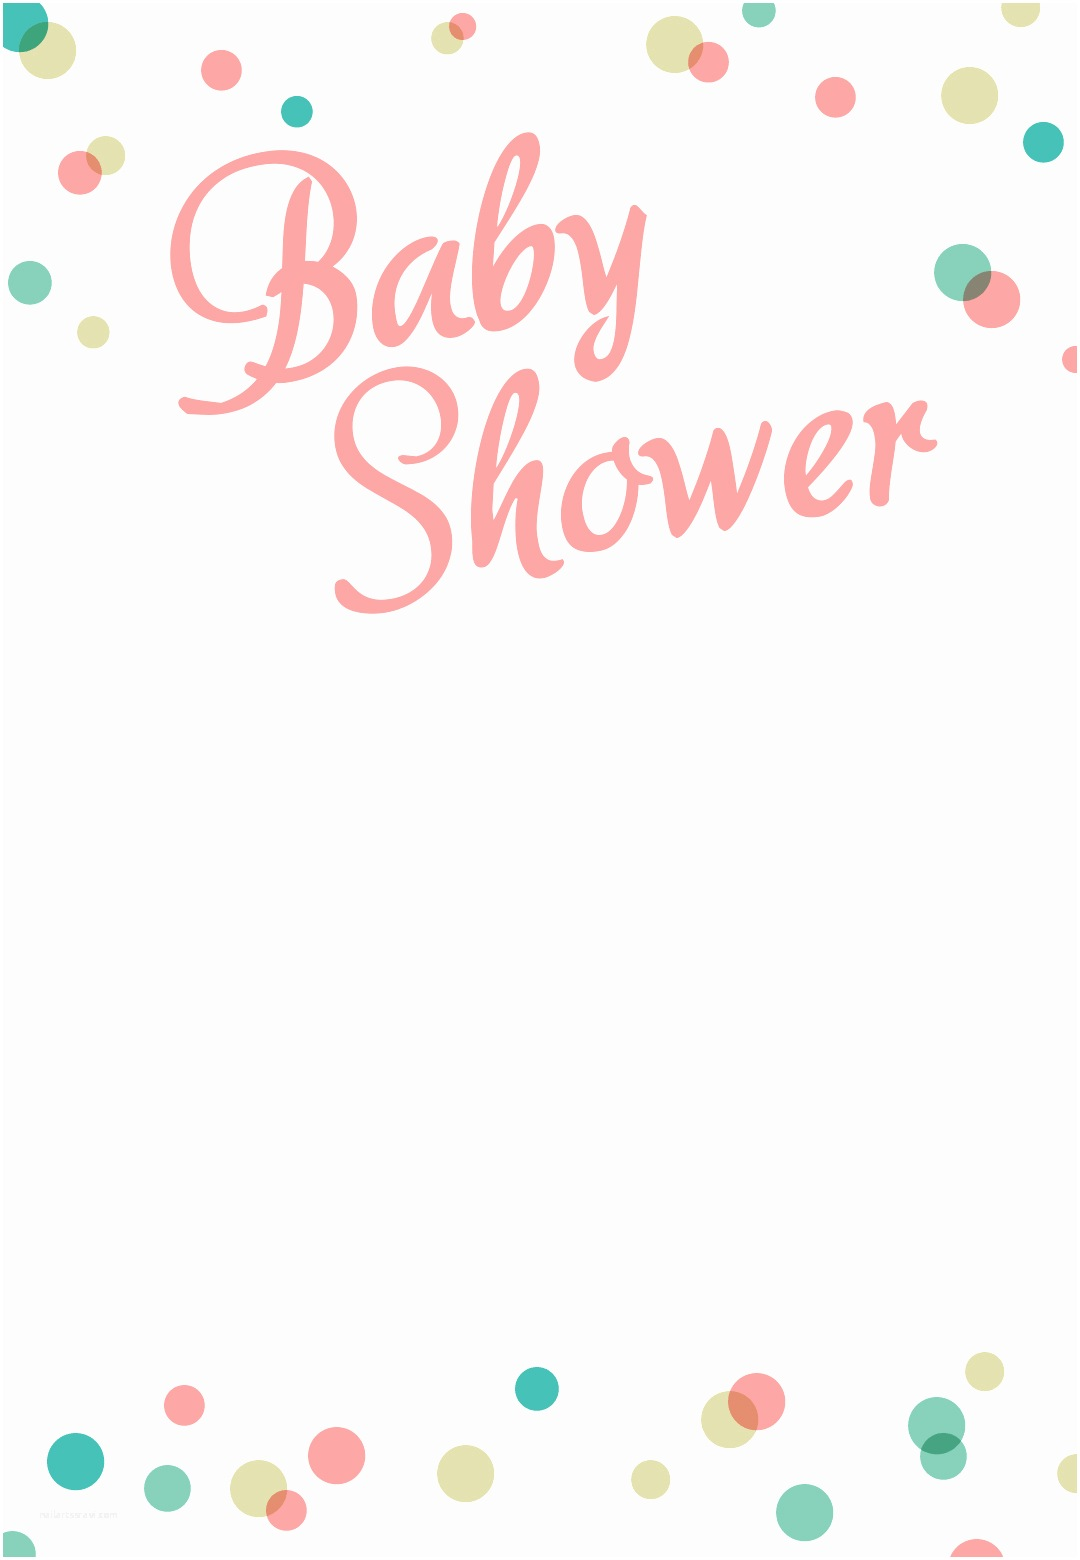 Free Baby Shower Invitations Templates Dancing Dots Borders Free Printable Baby Shower